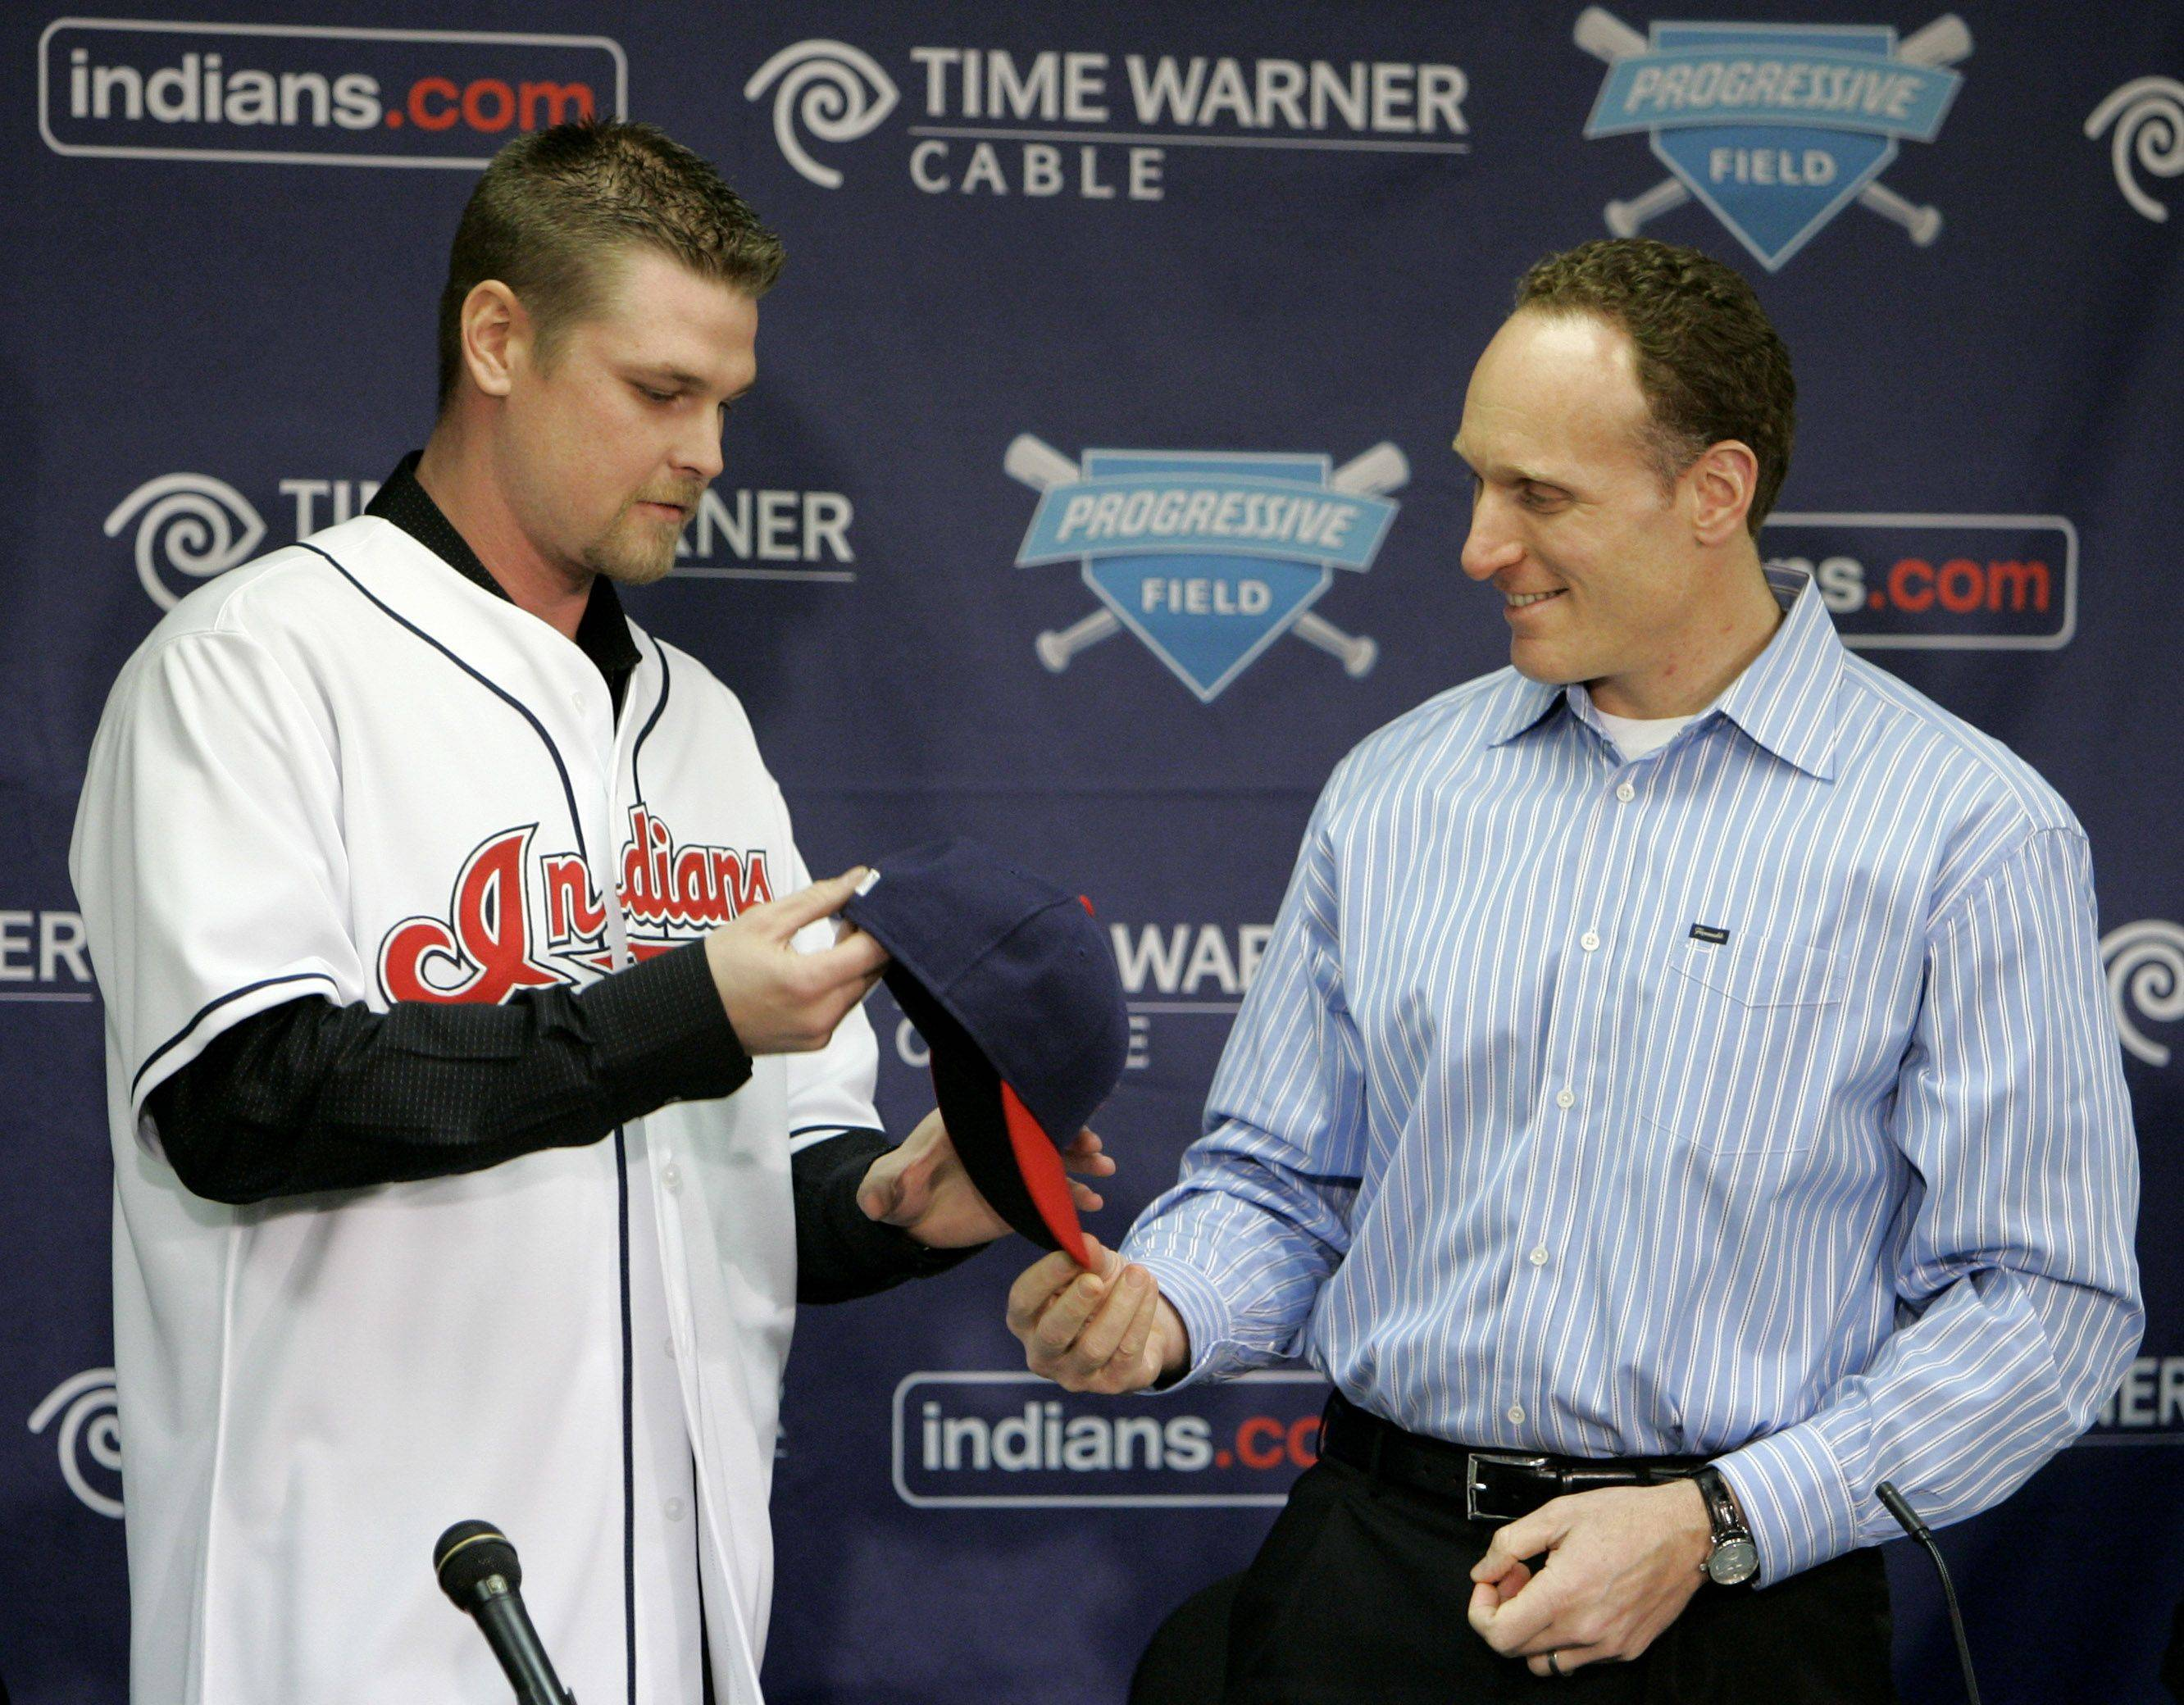 Pitcher Kerry Wood tries on his new Cleveland Indians jersey and hat with general manager Mark Shapiro Thursday, Dec. 18, 2008, during a news conference in Cleveland. Wood got his first look at at his new home ballpark after signing a two-year, $20 million contract with the Indians.